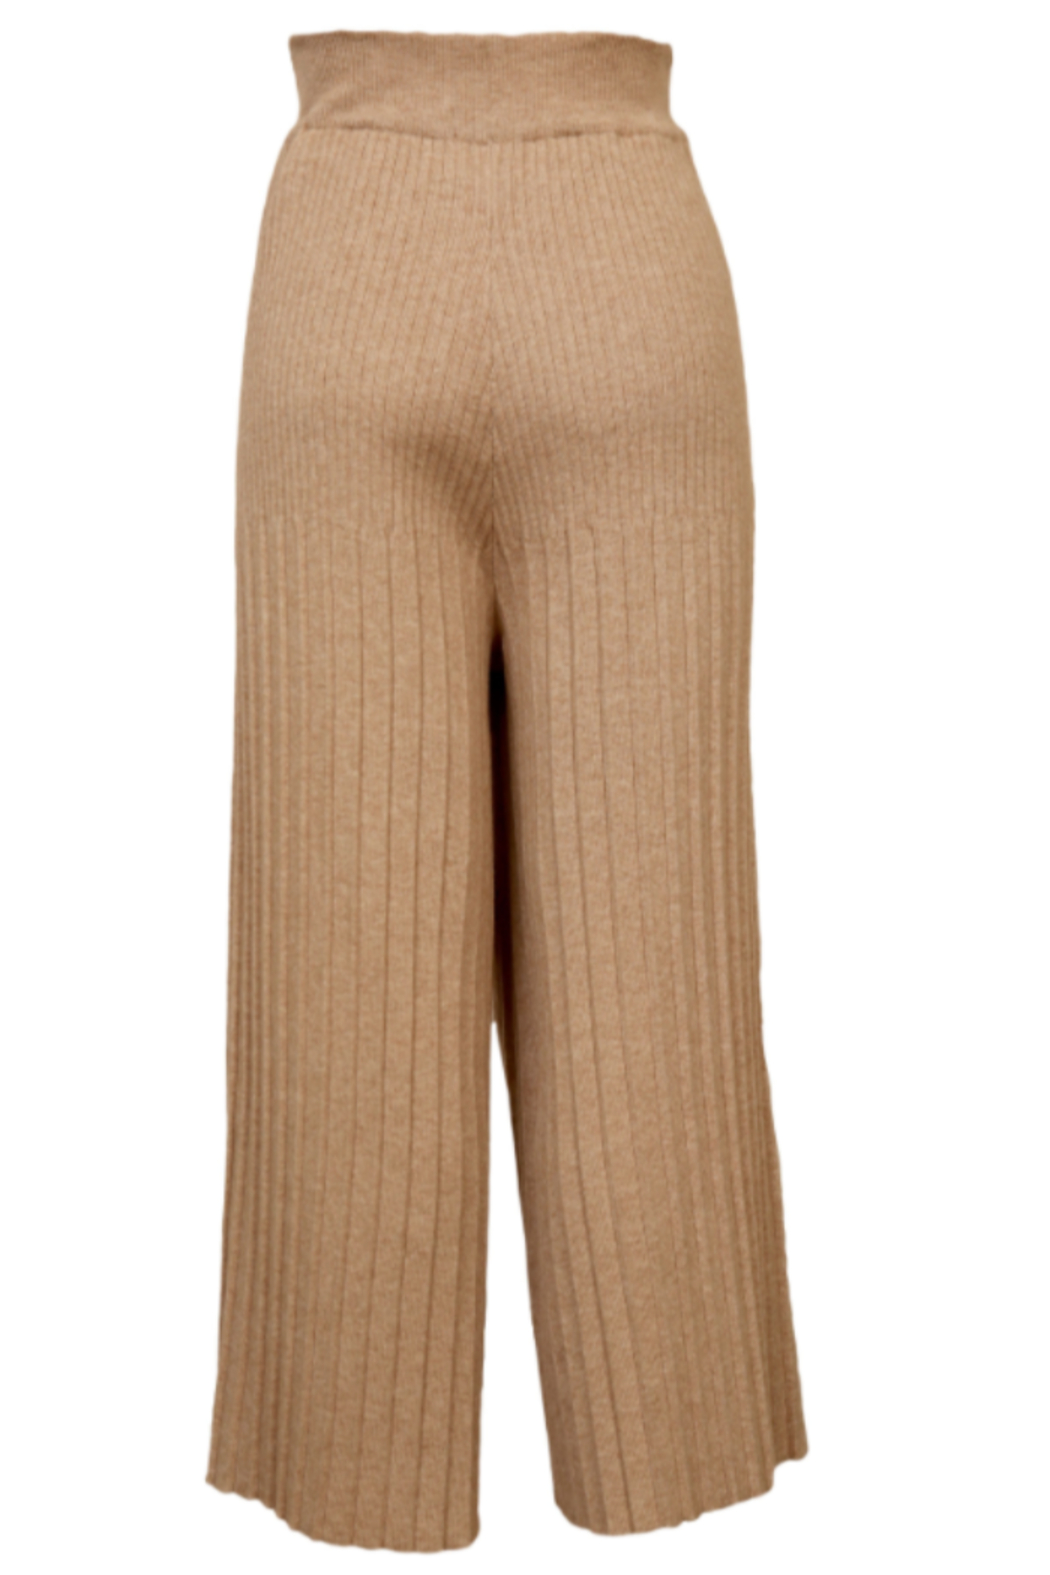 Line & Dot Reagan Ribbed Sweater Pant - Front Full Image